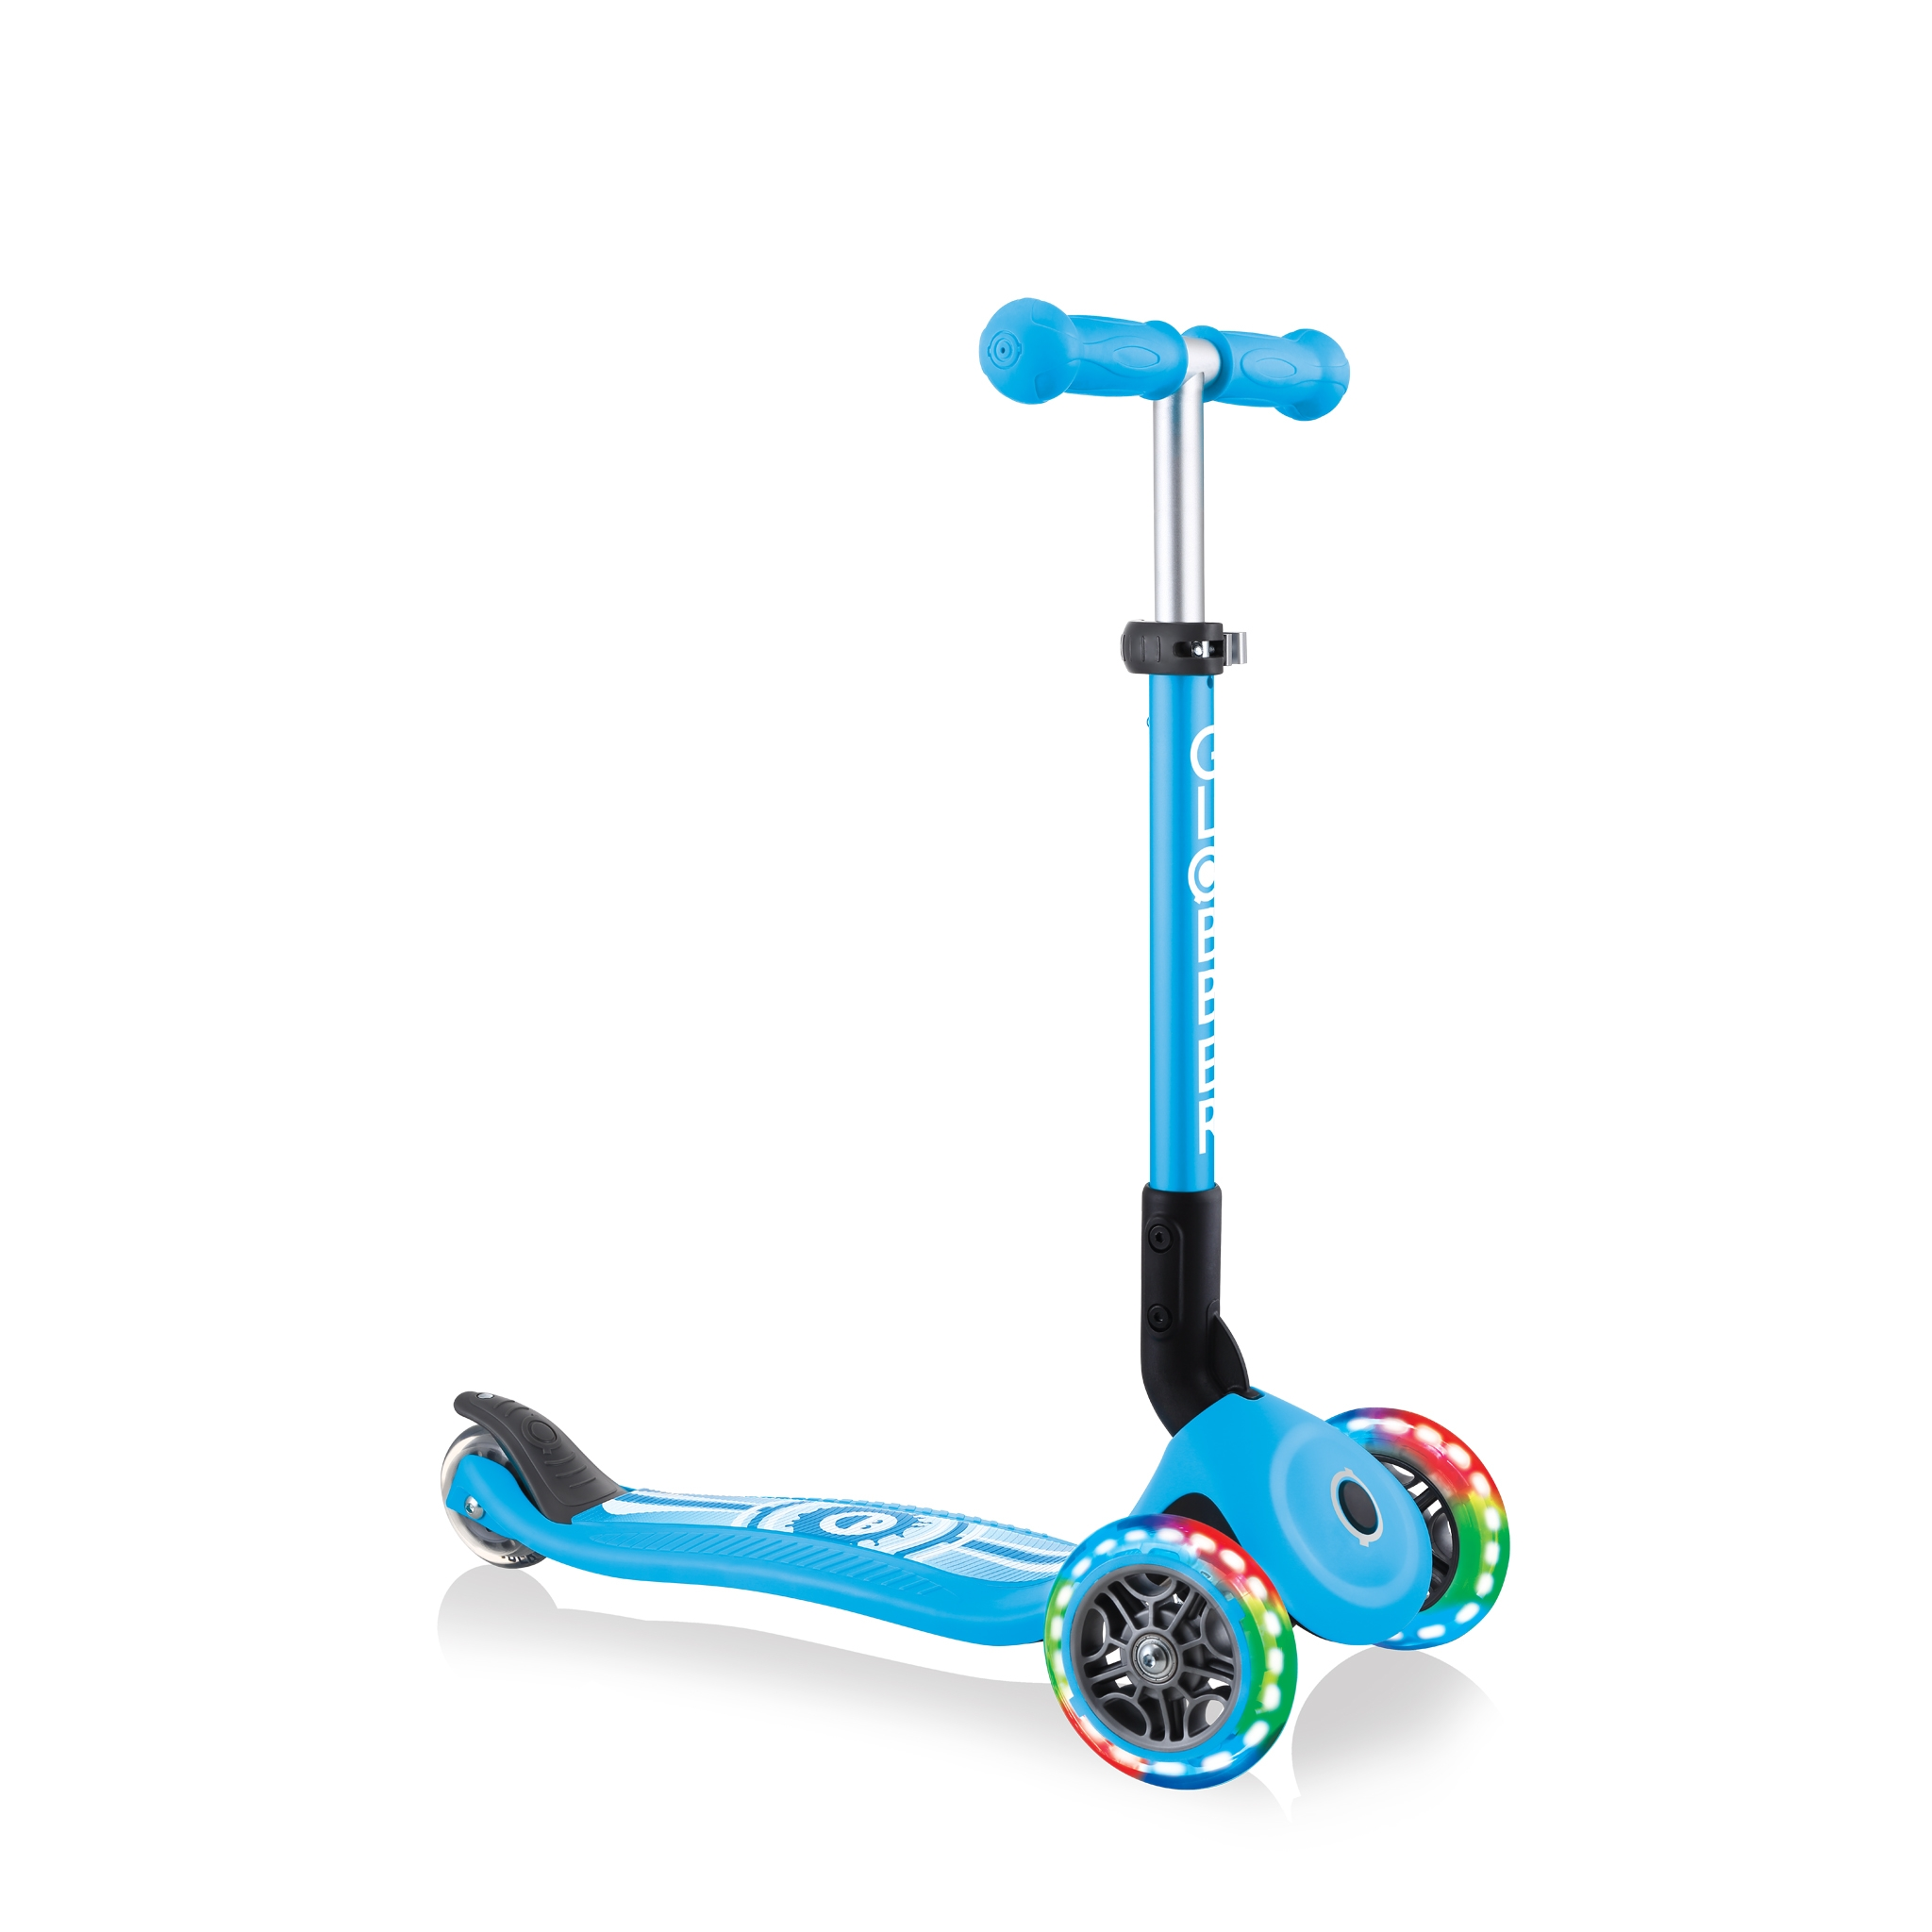 junior-foldable-fantasy-lights-3-wheel-scooter-for-toddlers 0